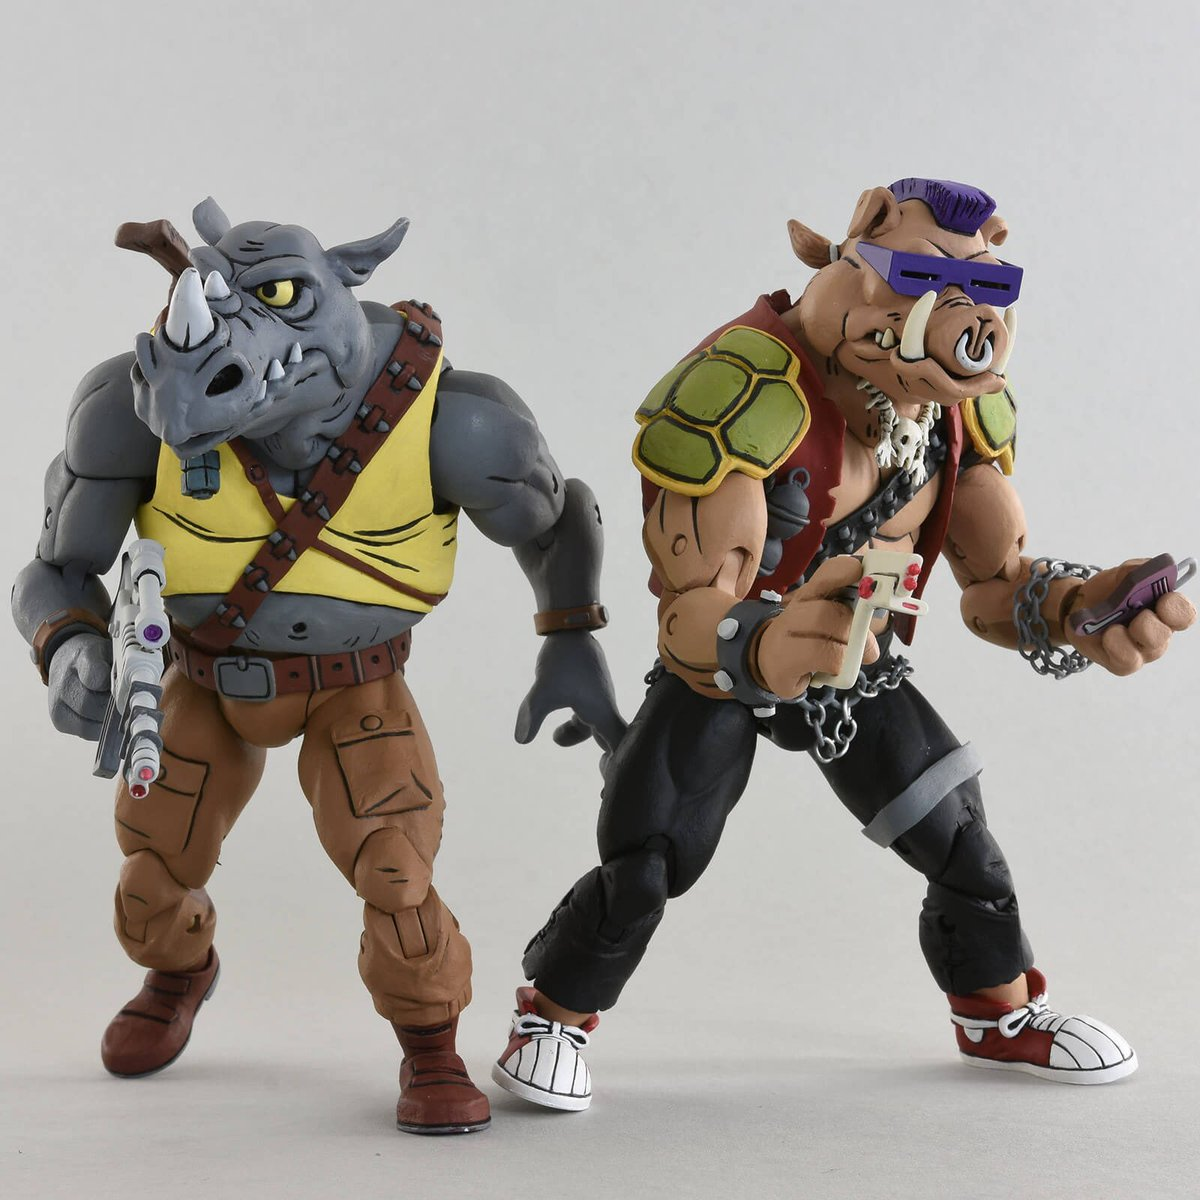 Donatello was always my fav, but show some love for Rocksteady and Bebop!